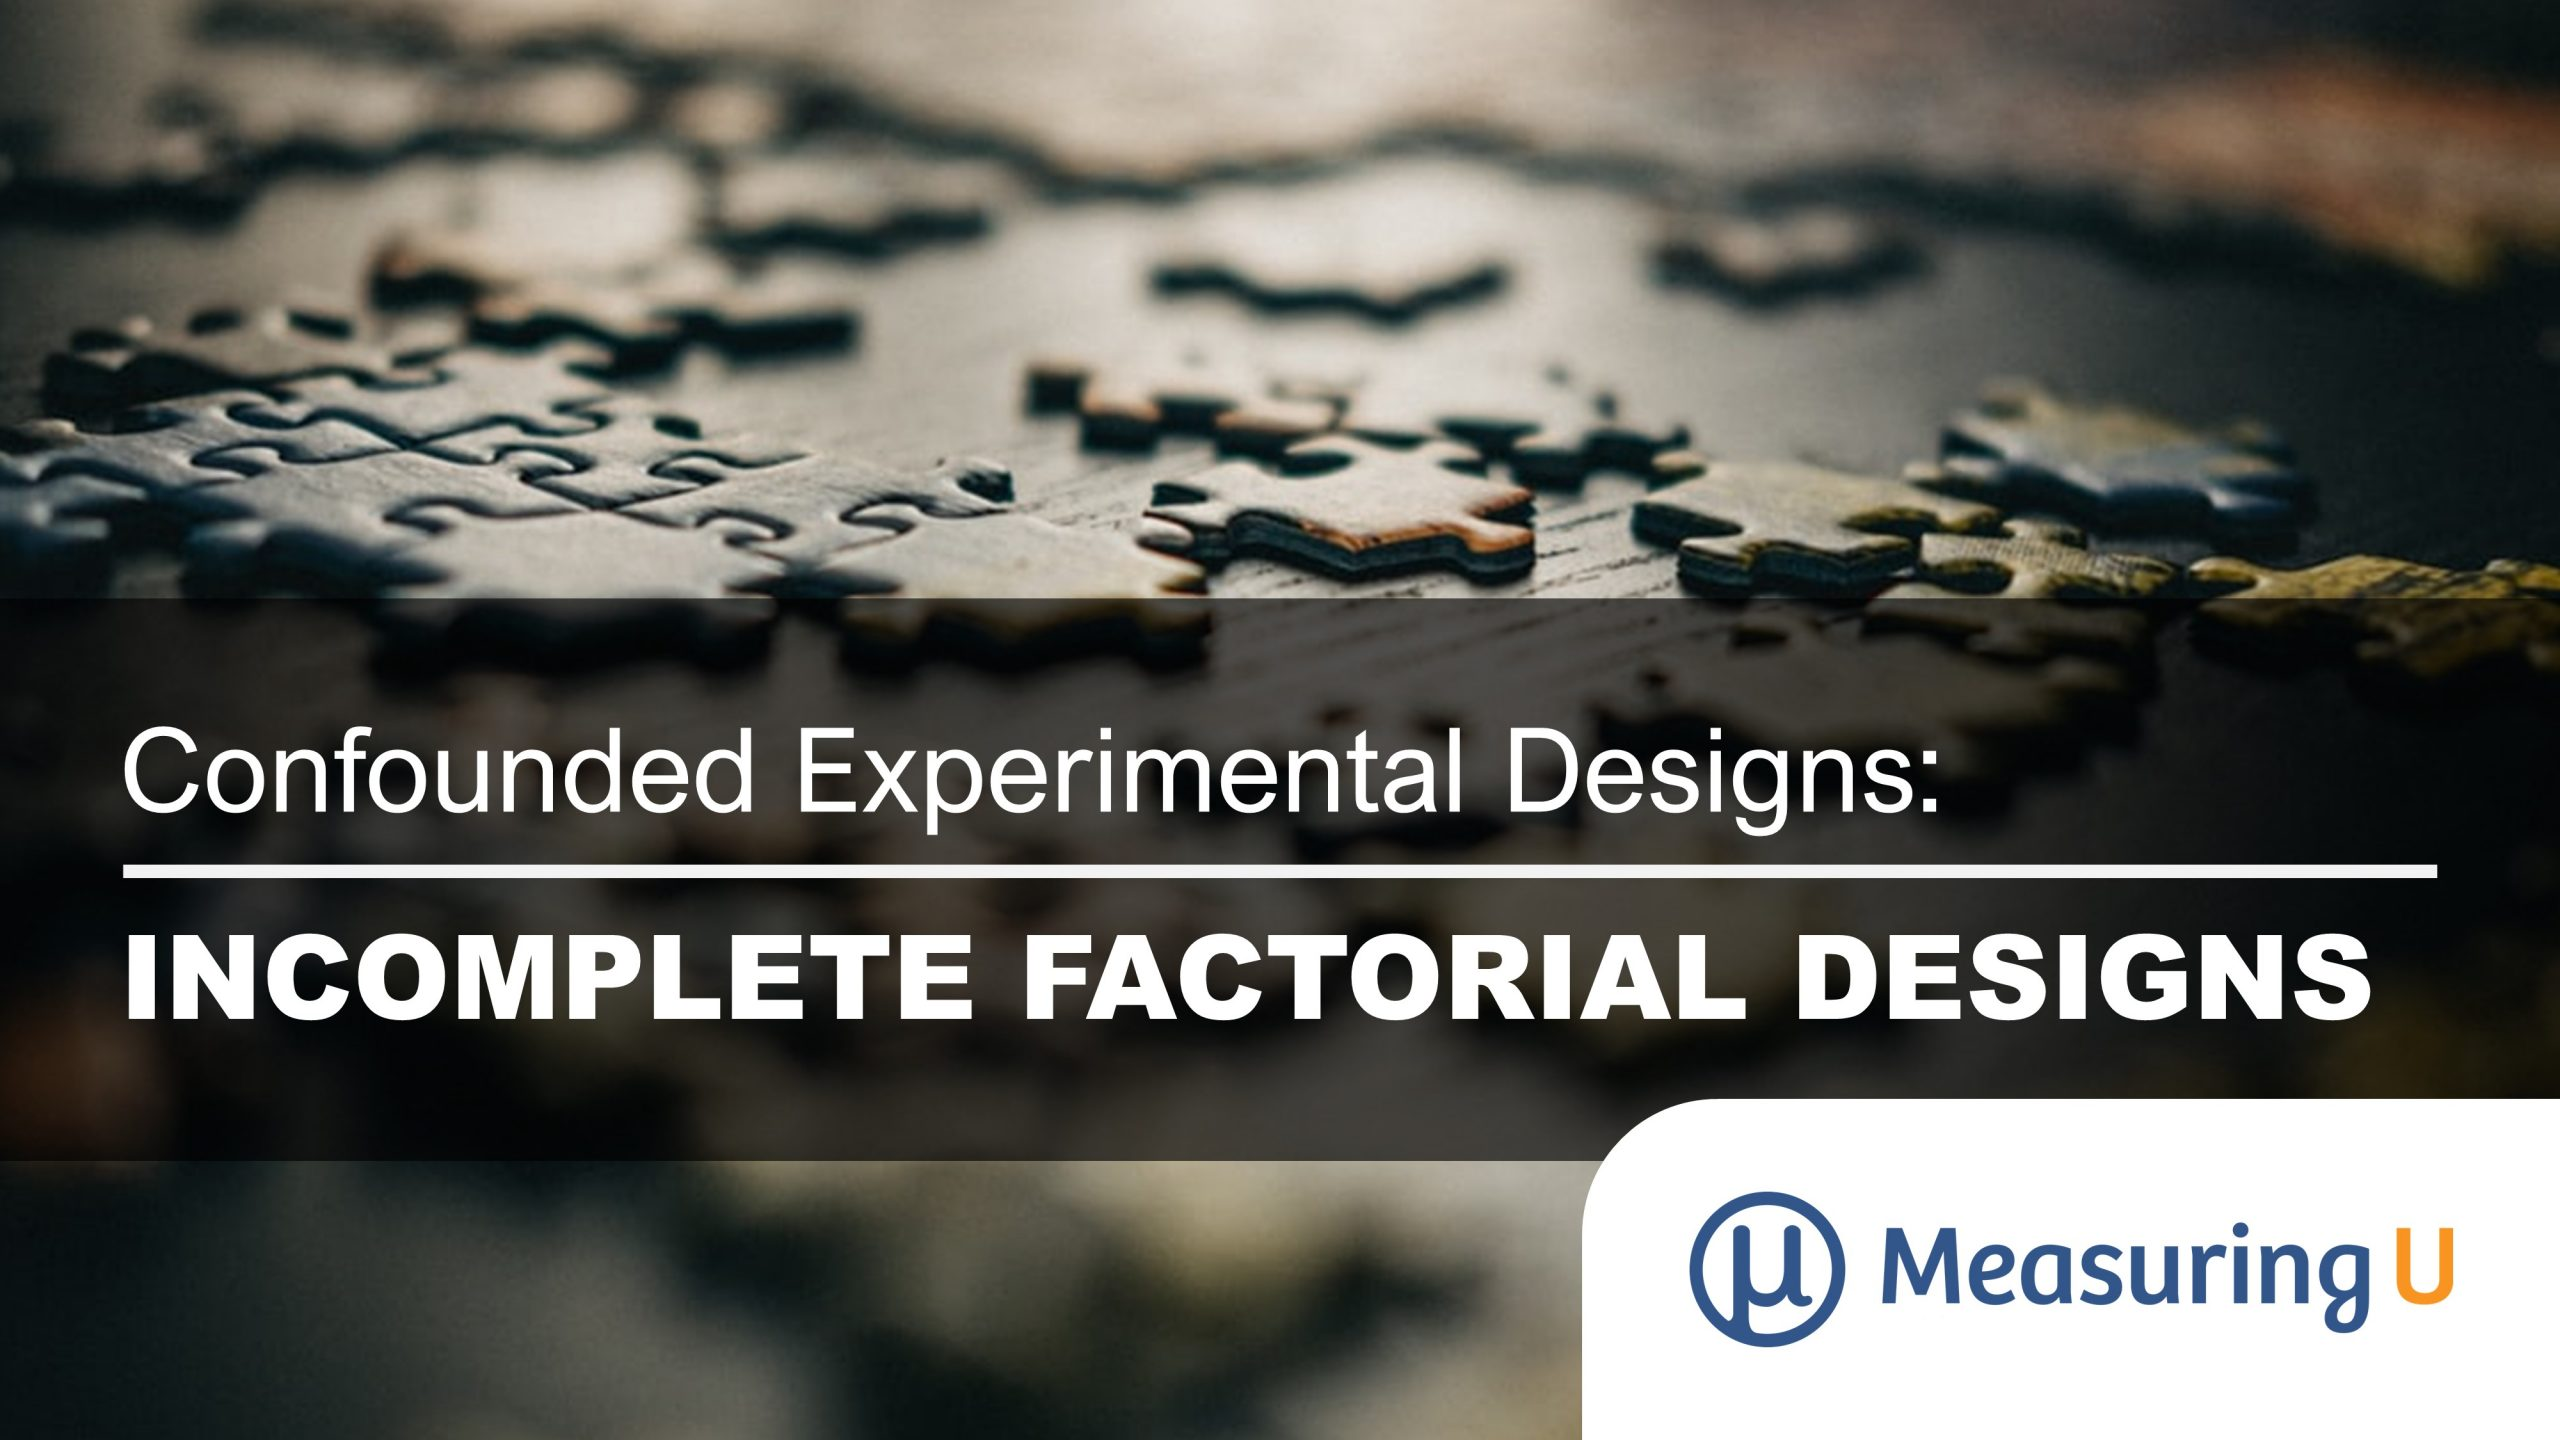 Confounded Experimental Designs, Part 1: Incomplete Factorial Designs